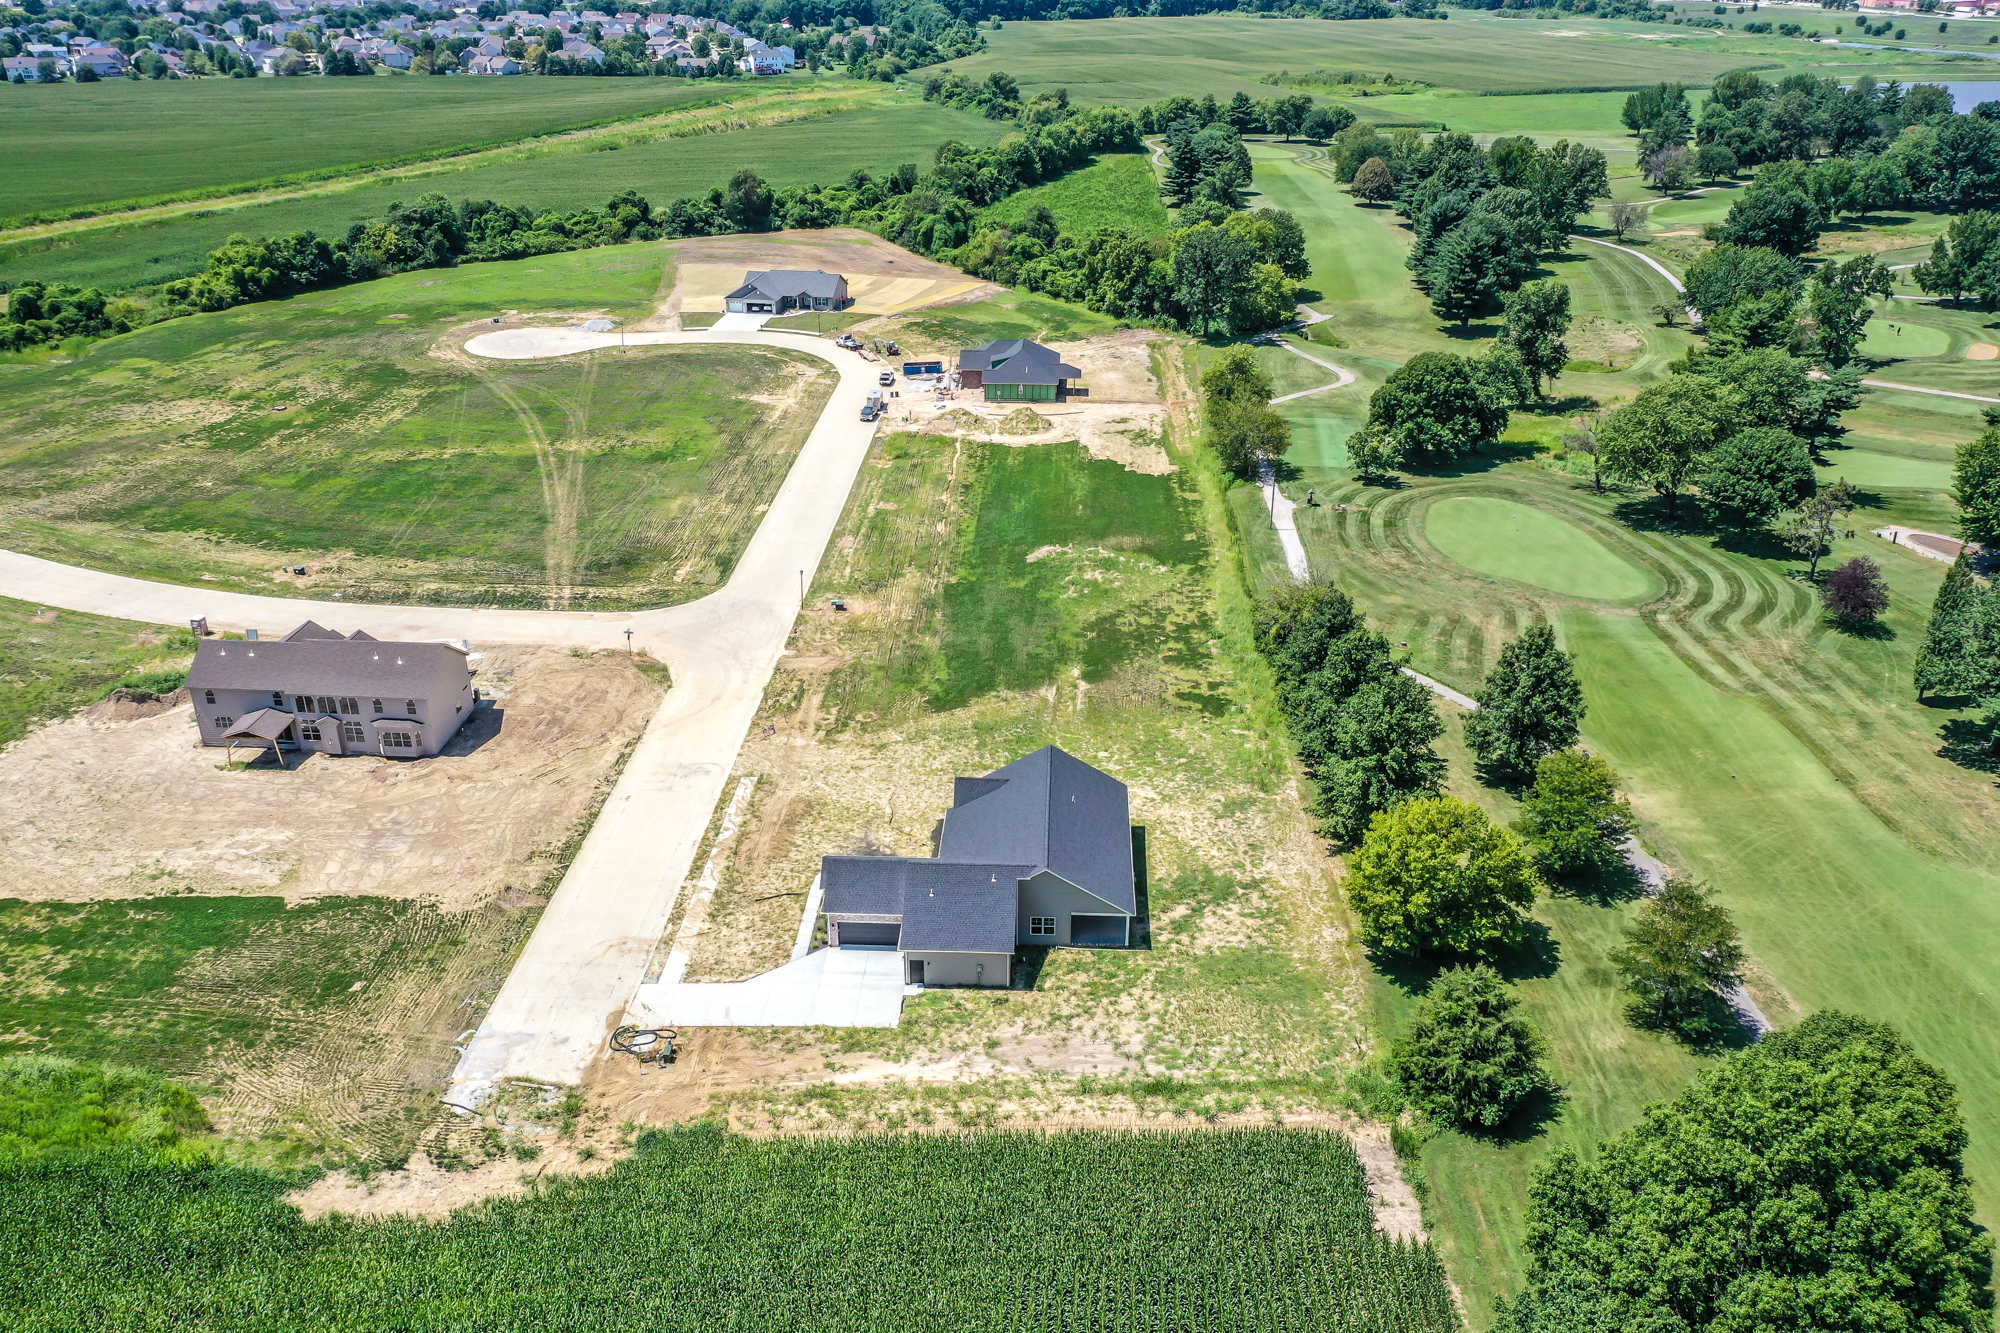 New_Construction_Homes_For_Sale_Shiloh_Illinois_Near_Scott_AFB-17.jpg